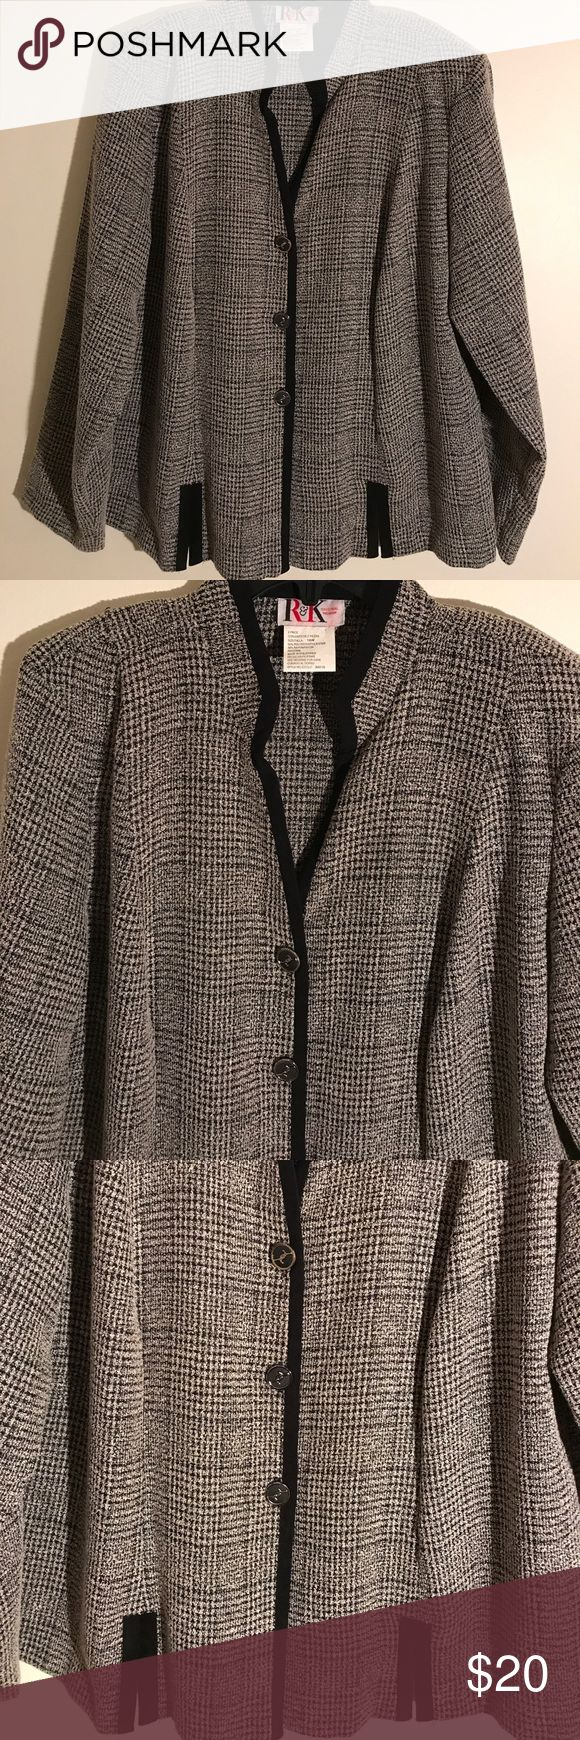 R & K Stunning Blazer EXCELLENT CONDITION NO FLAWS!Details, measurements and modeling photos coming Monday . If you're interested and need to know, please message me.YOU CAN CHOOSE TO PURCHASE ONLY 1 ITEM, BUT YOU CAN ONLY PURCHASE UP TO 3 ITEMS PER ORDER. OR YOUR ORDER WILL BE CANCELLED. R & K Jackets & Coats Blazers